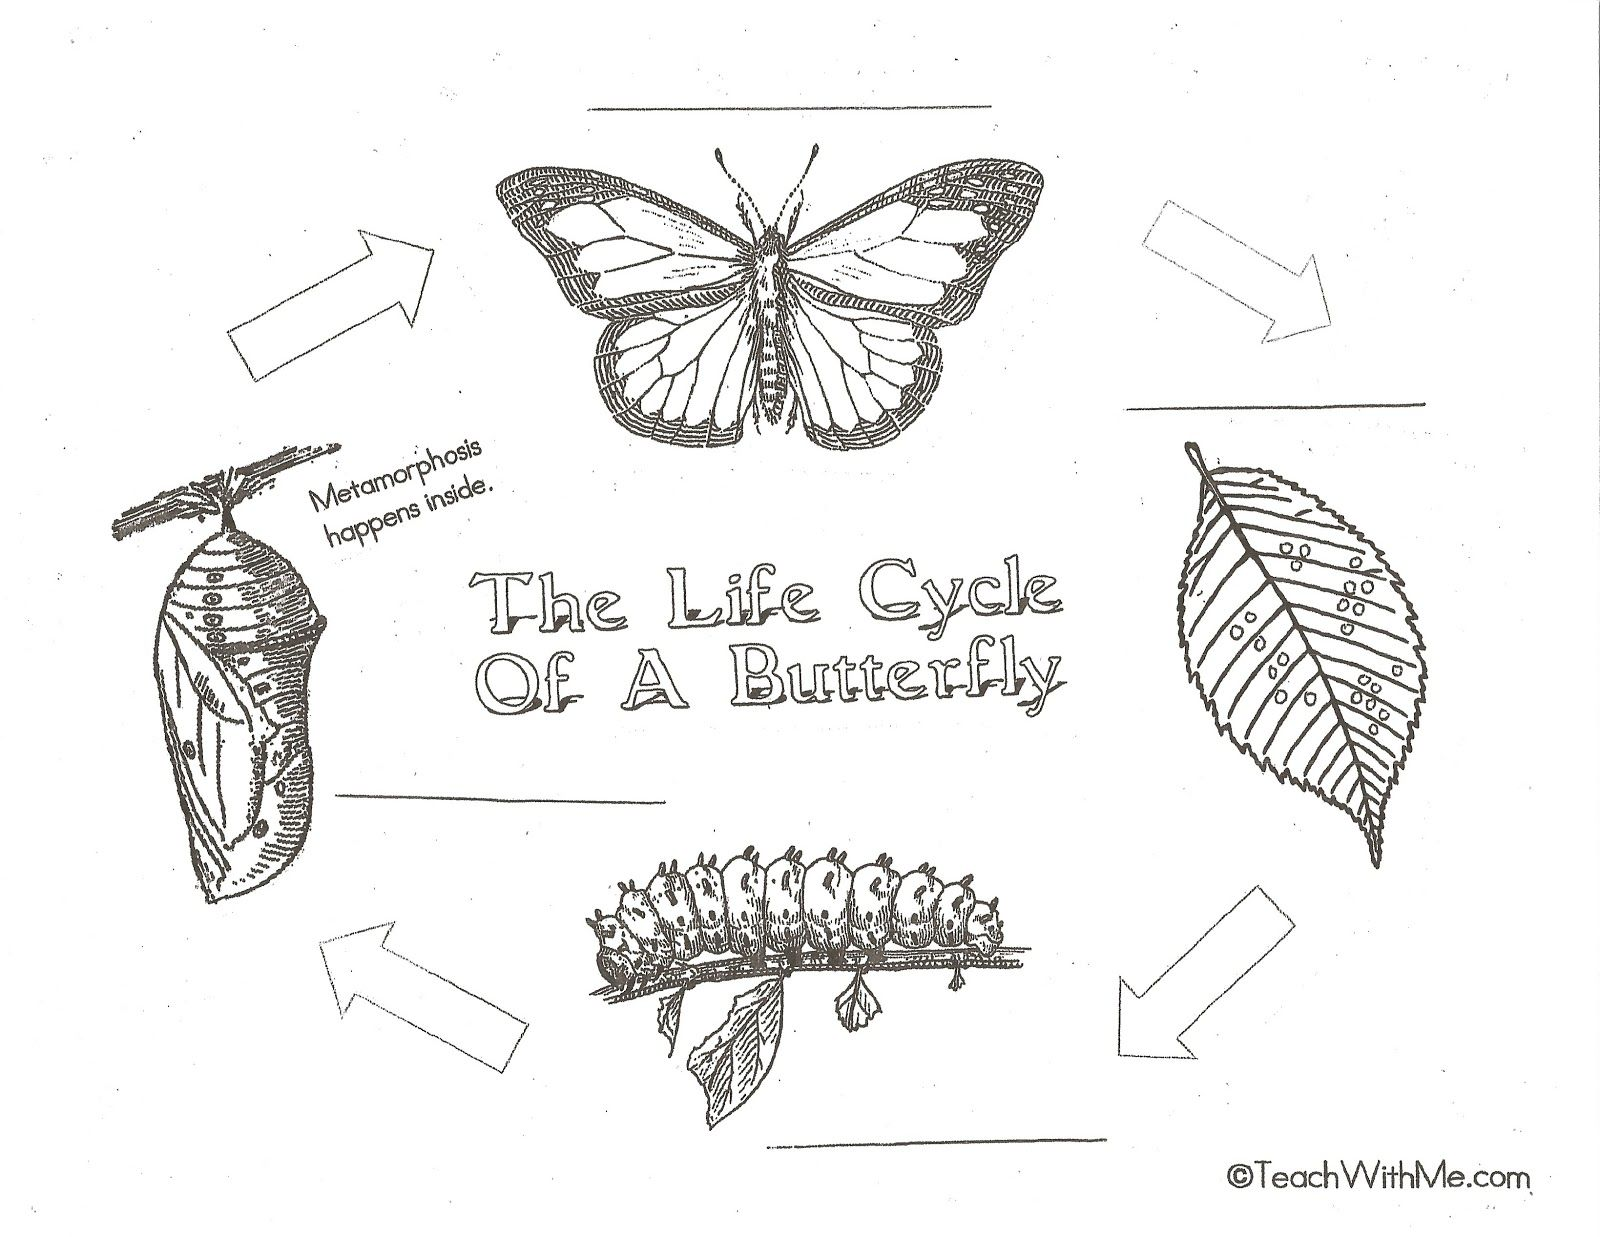 Worksheets Life Cycle Of A Butterfly Worksheet butterfly life cycle anchor chartsposters chartsposters